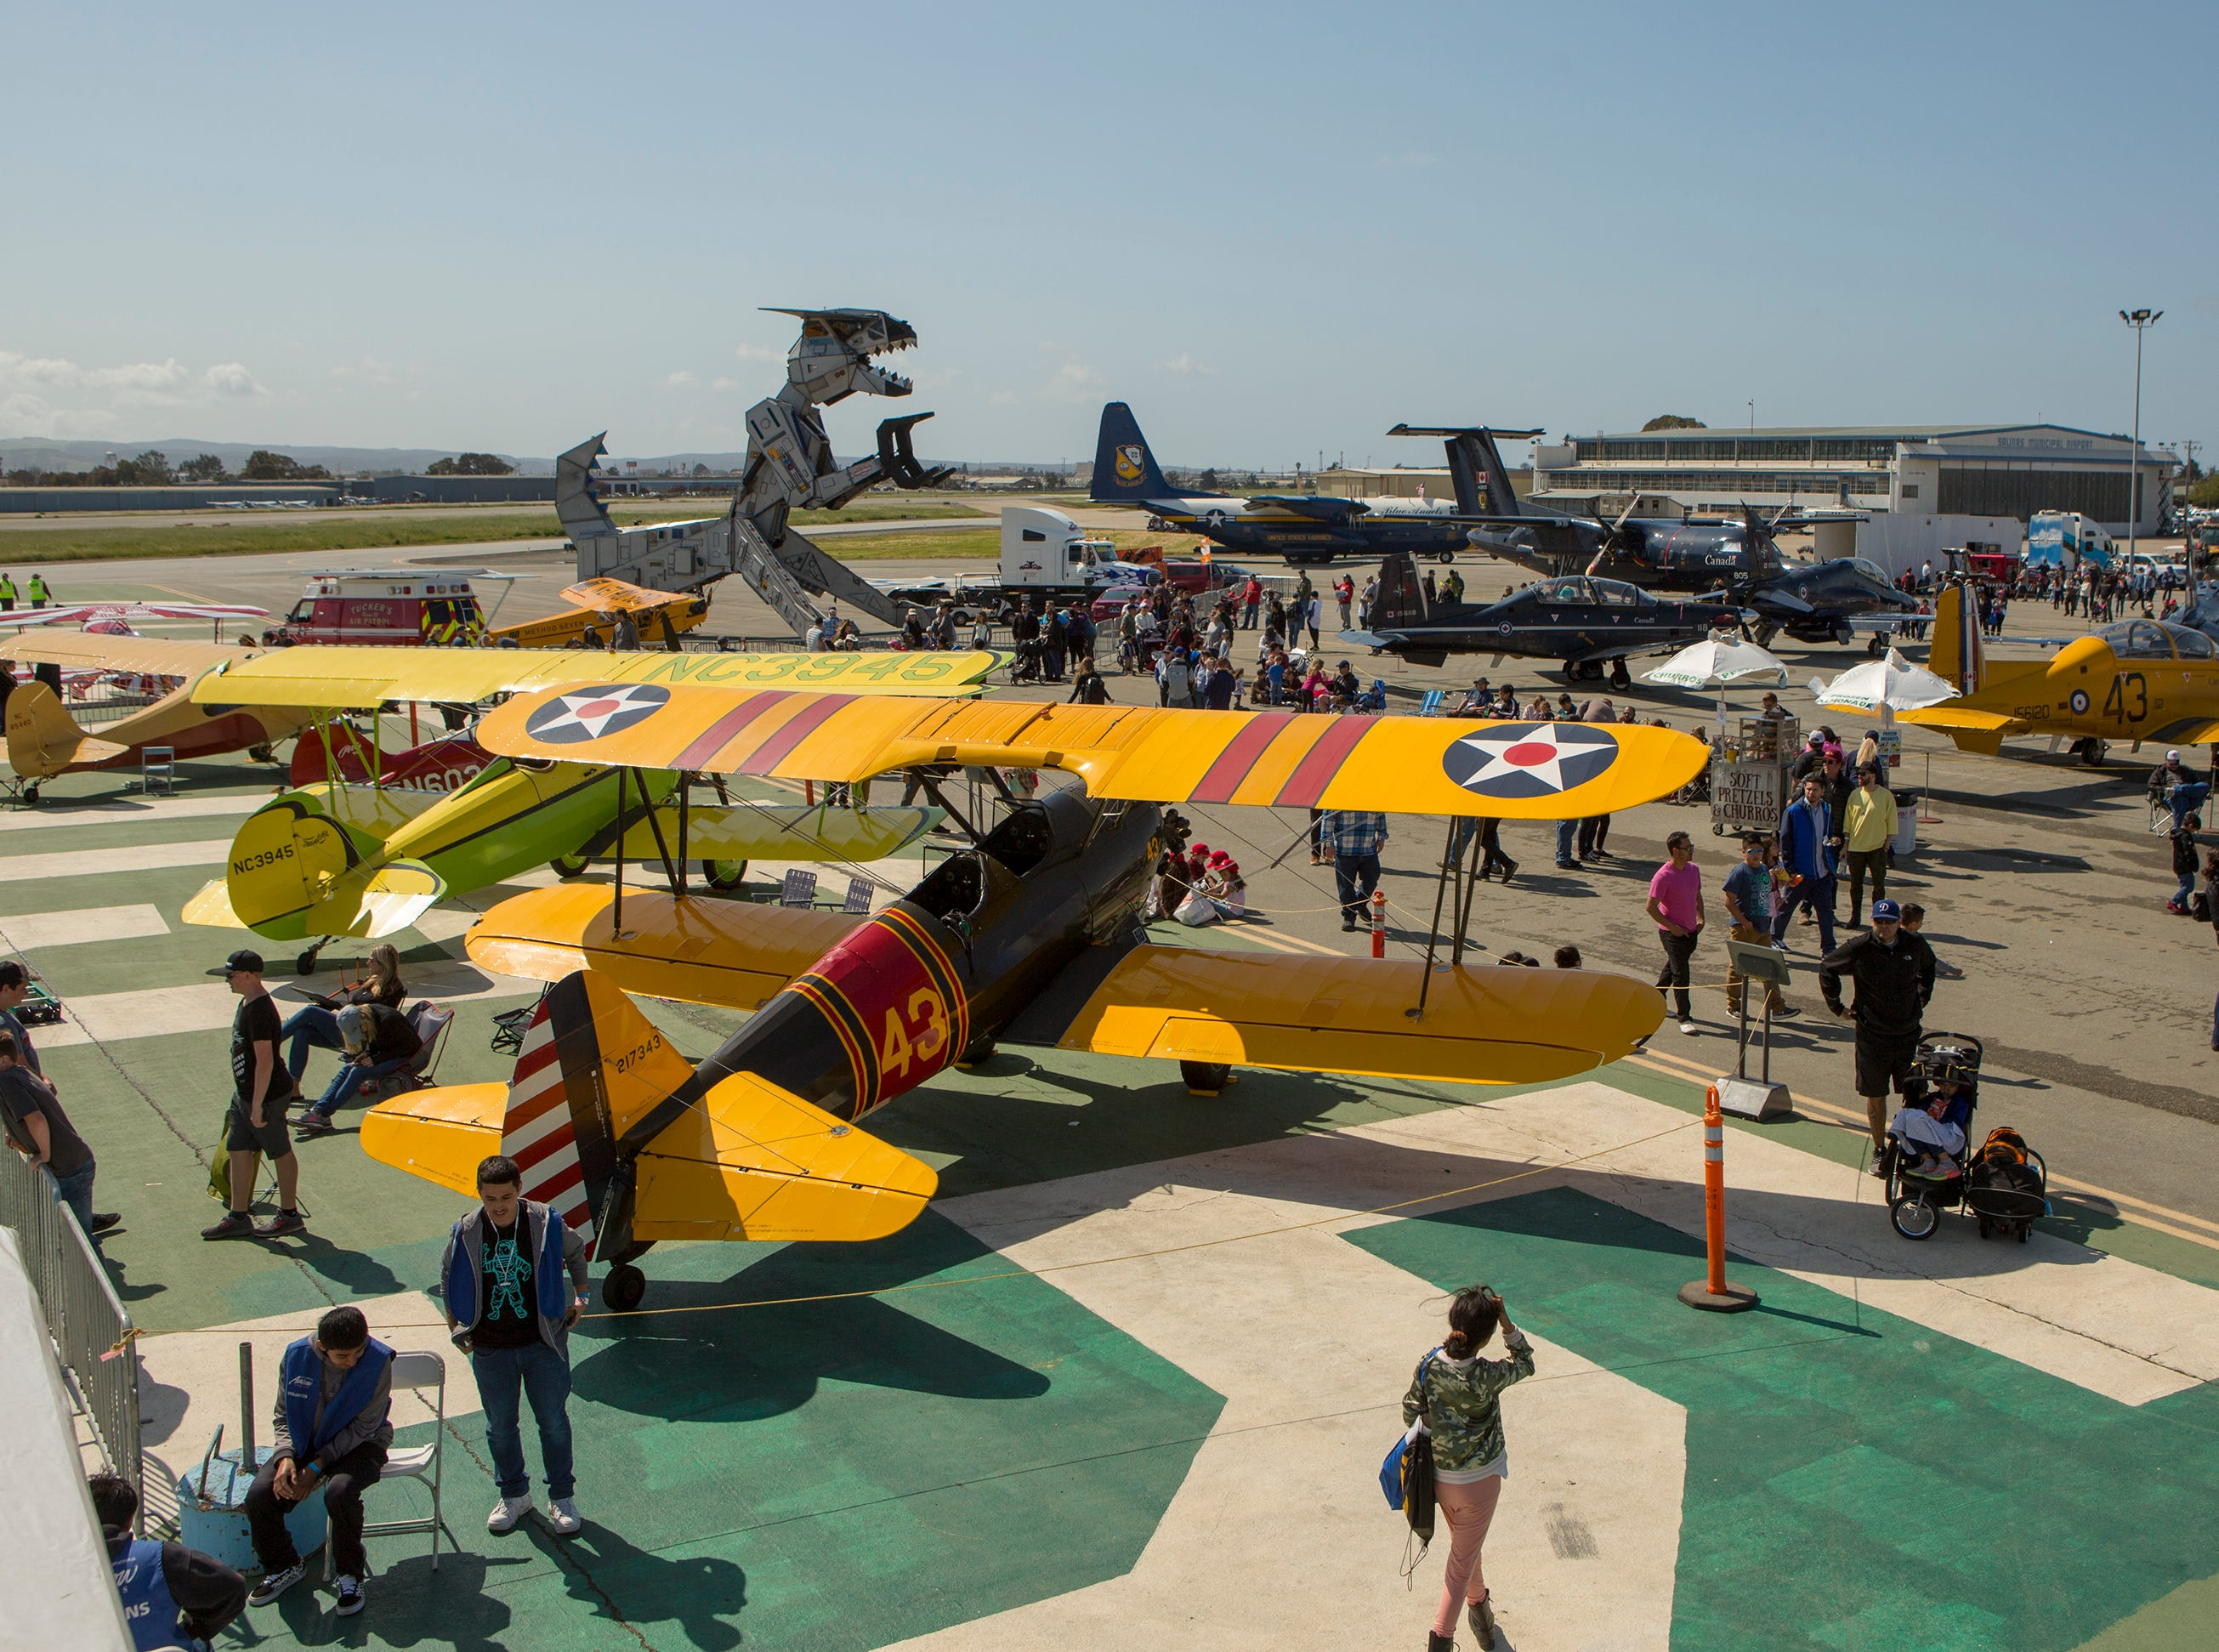 Planes sit on the tarmac during the California International Airshow Salinas at the Salinas Airport on March 23, 2019. (Photo by David Royal)